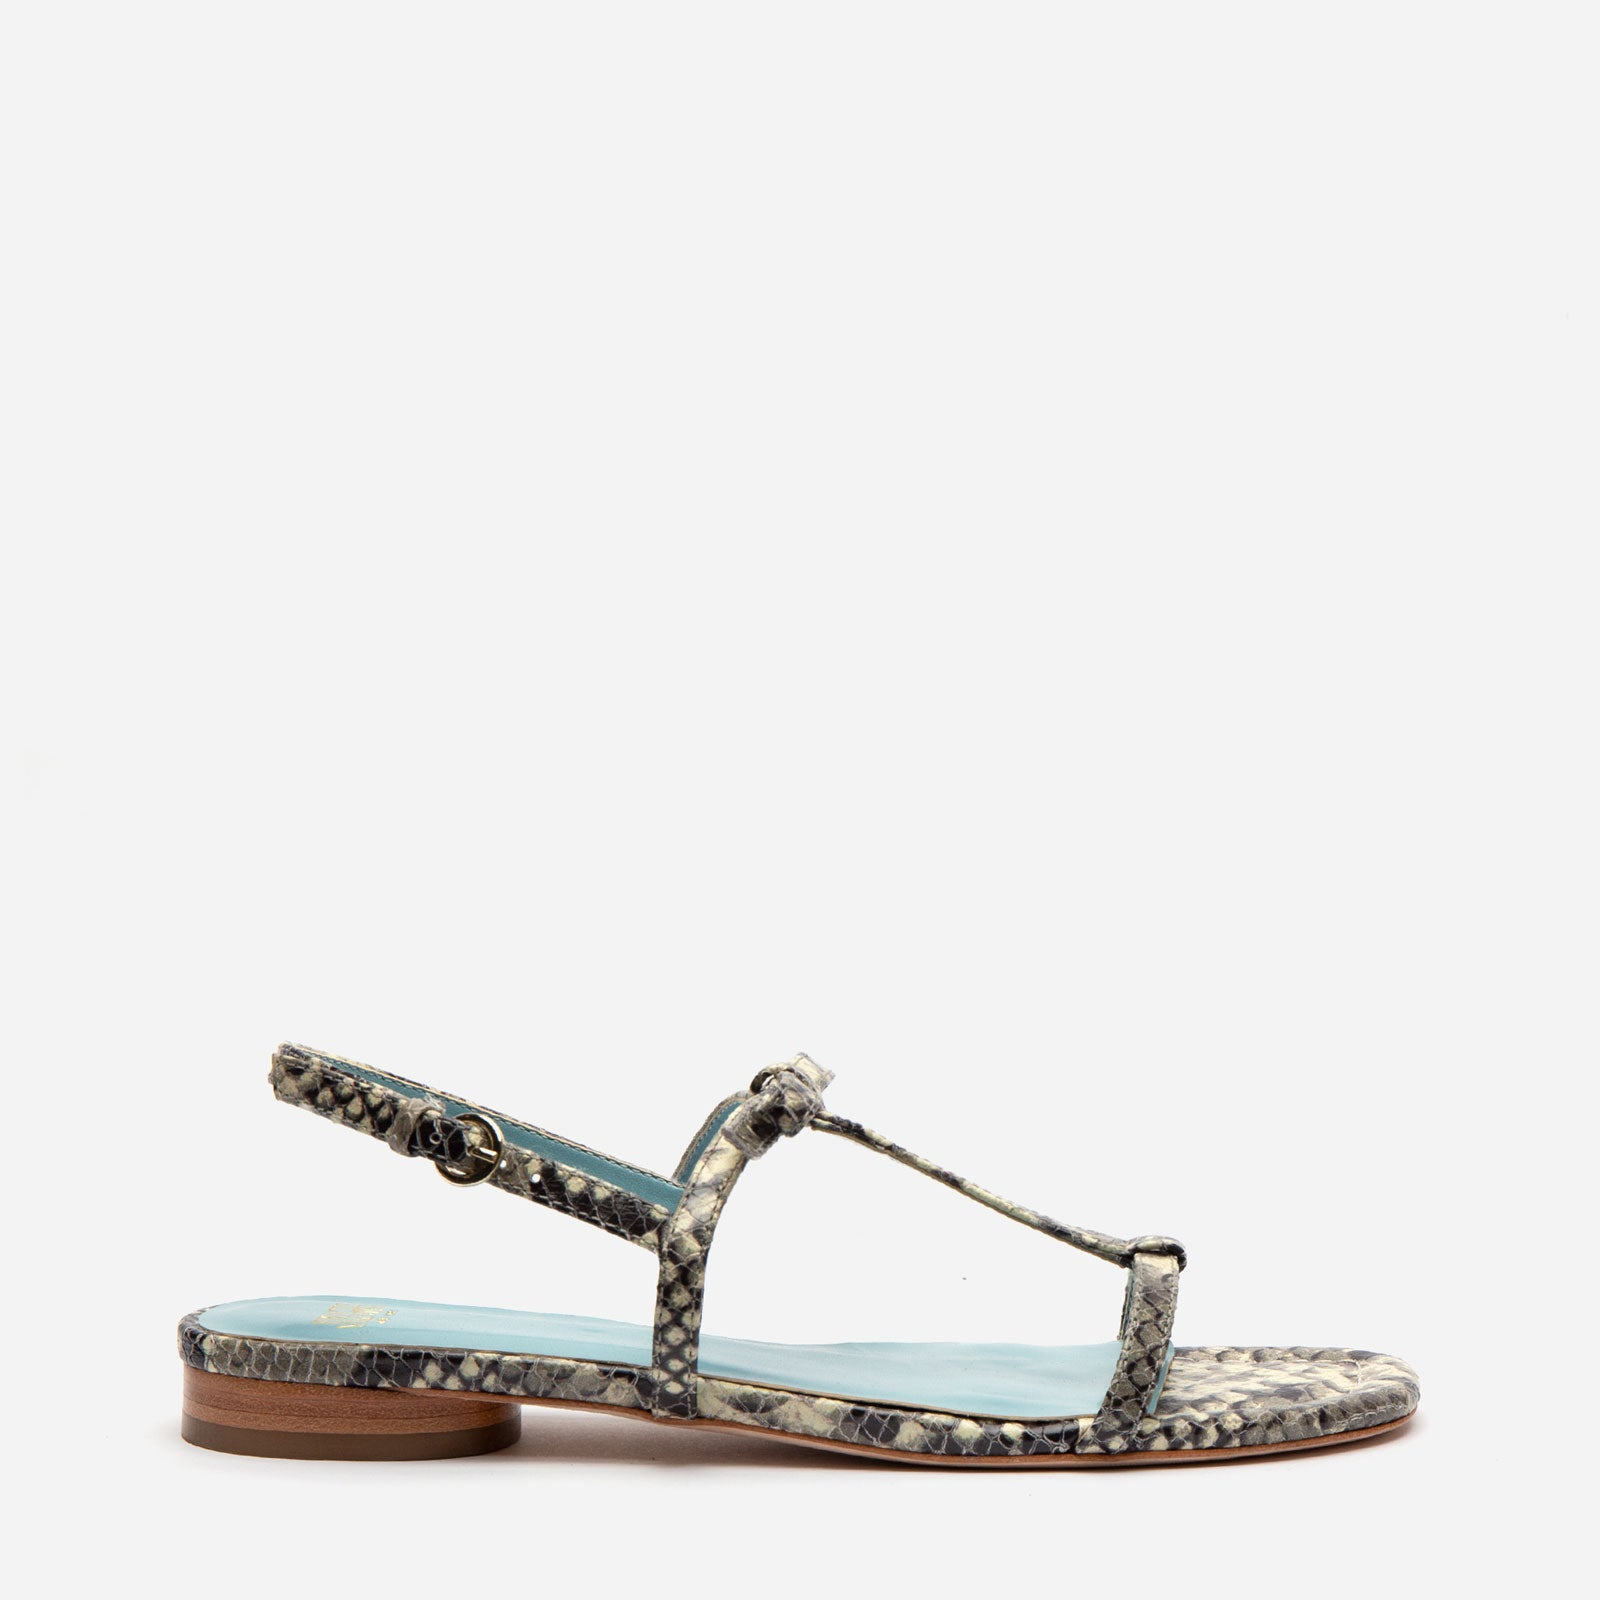 Lily Snake Embossed Leather Sandal Roccia - Frances Valentine